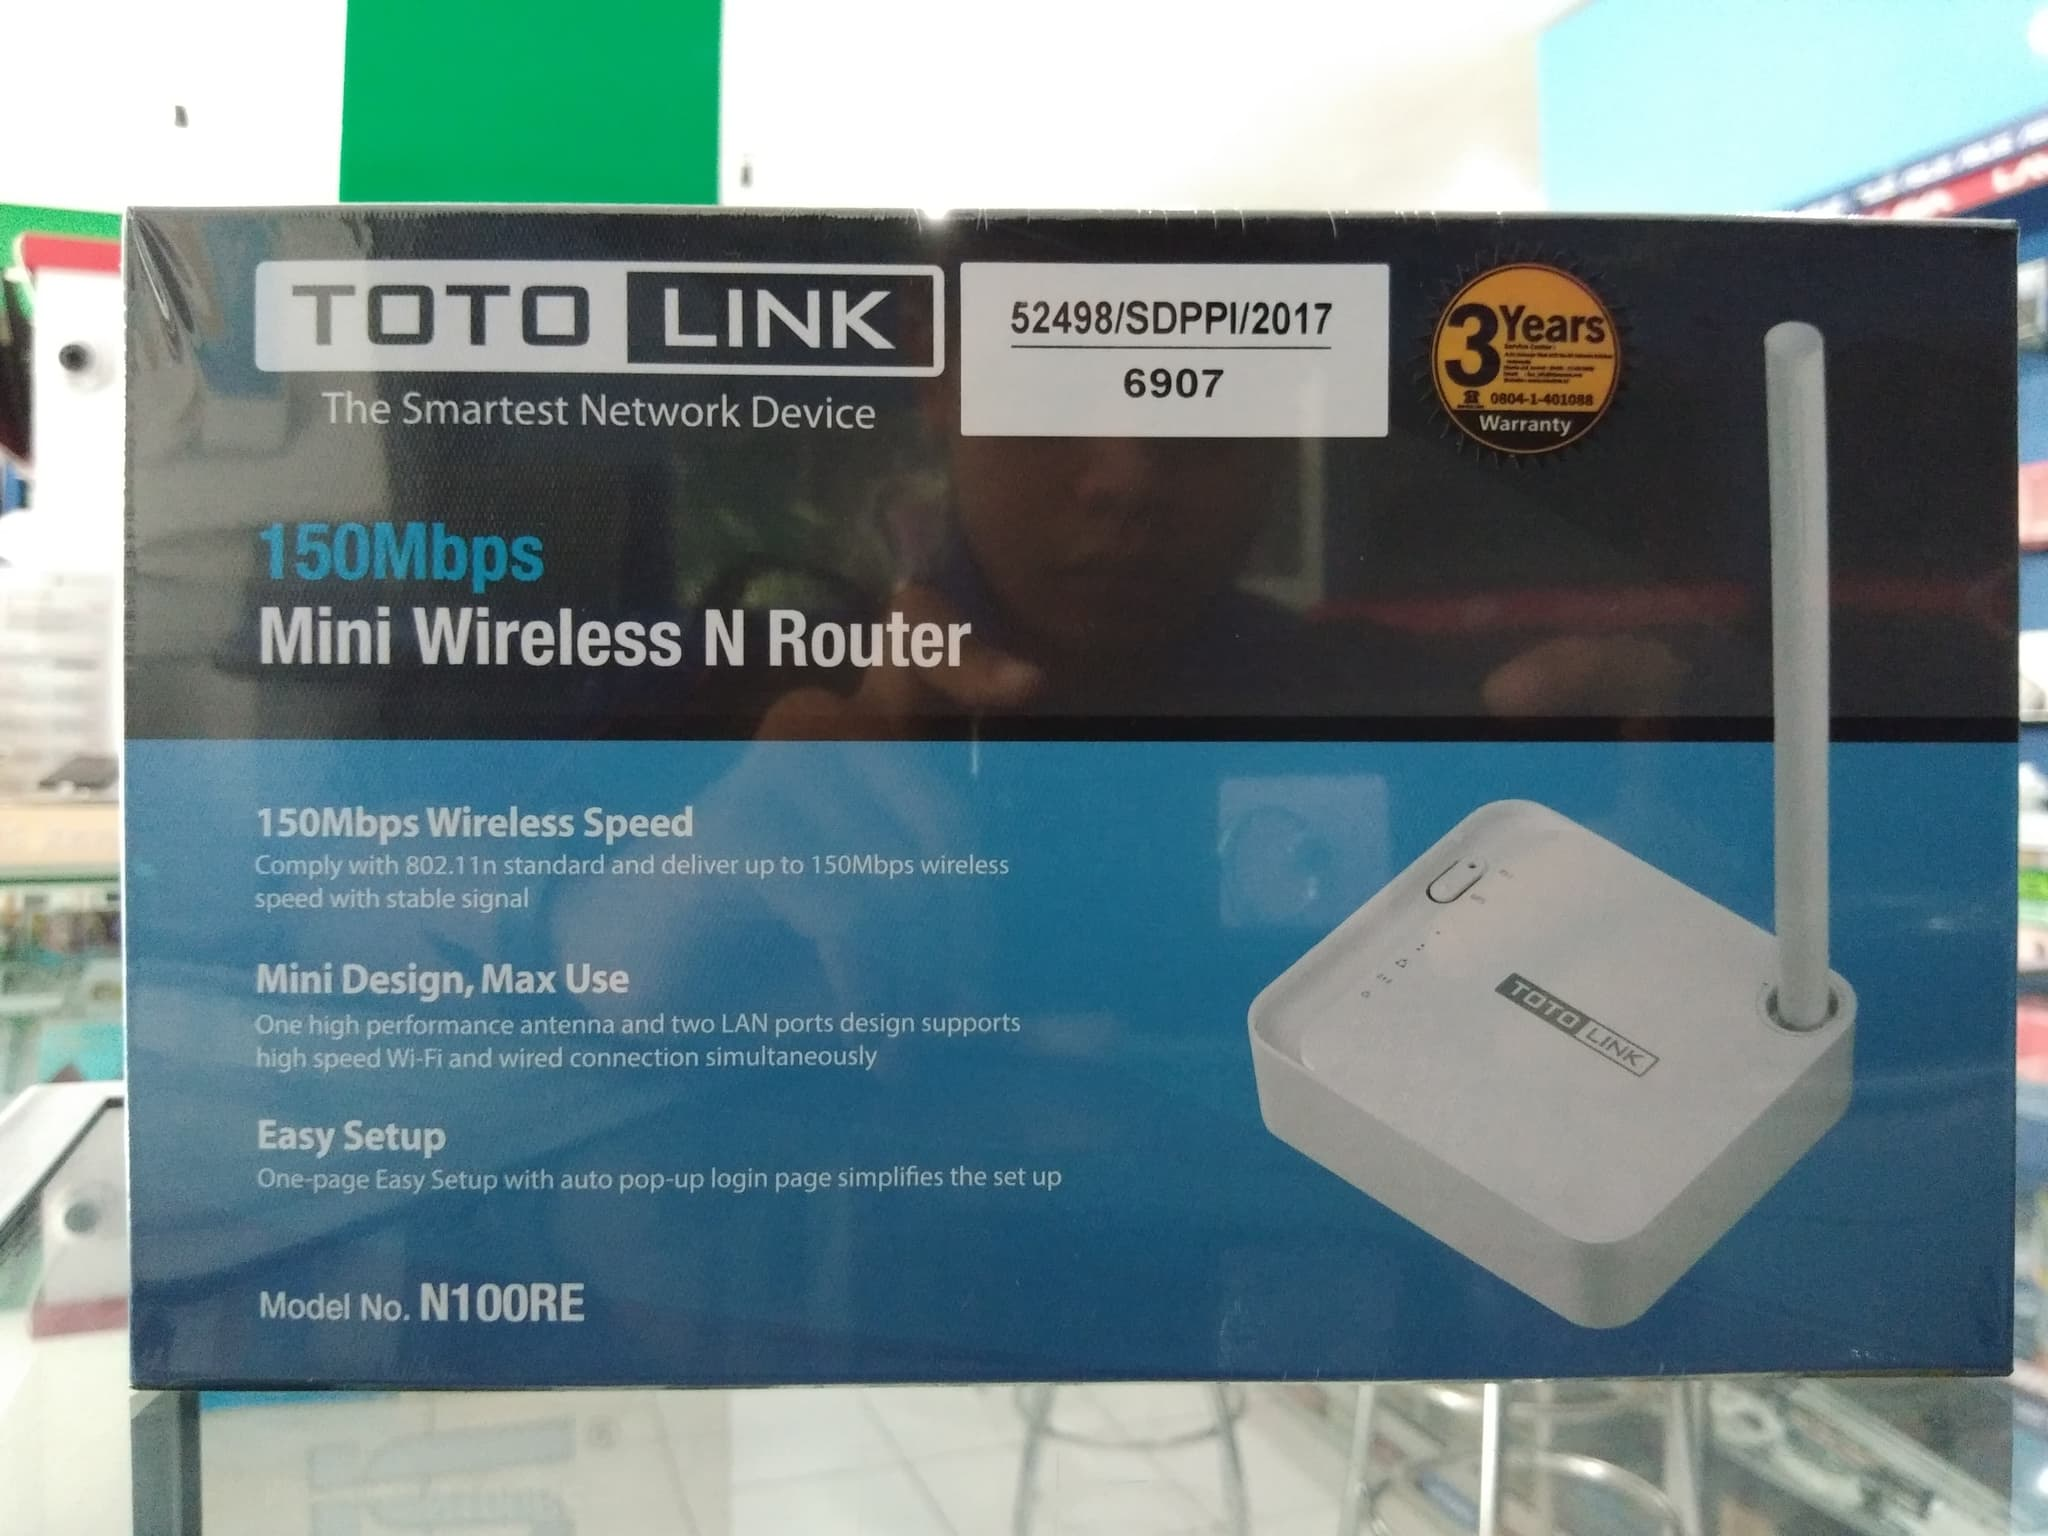 Jual Toto Link Mini Wireless N Router N100re Rapikom Tokopedia Totolink 150mbps